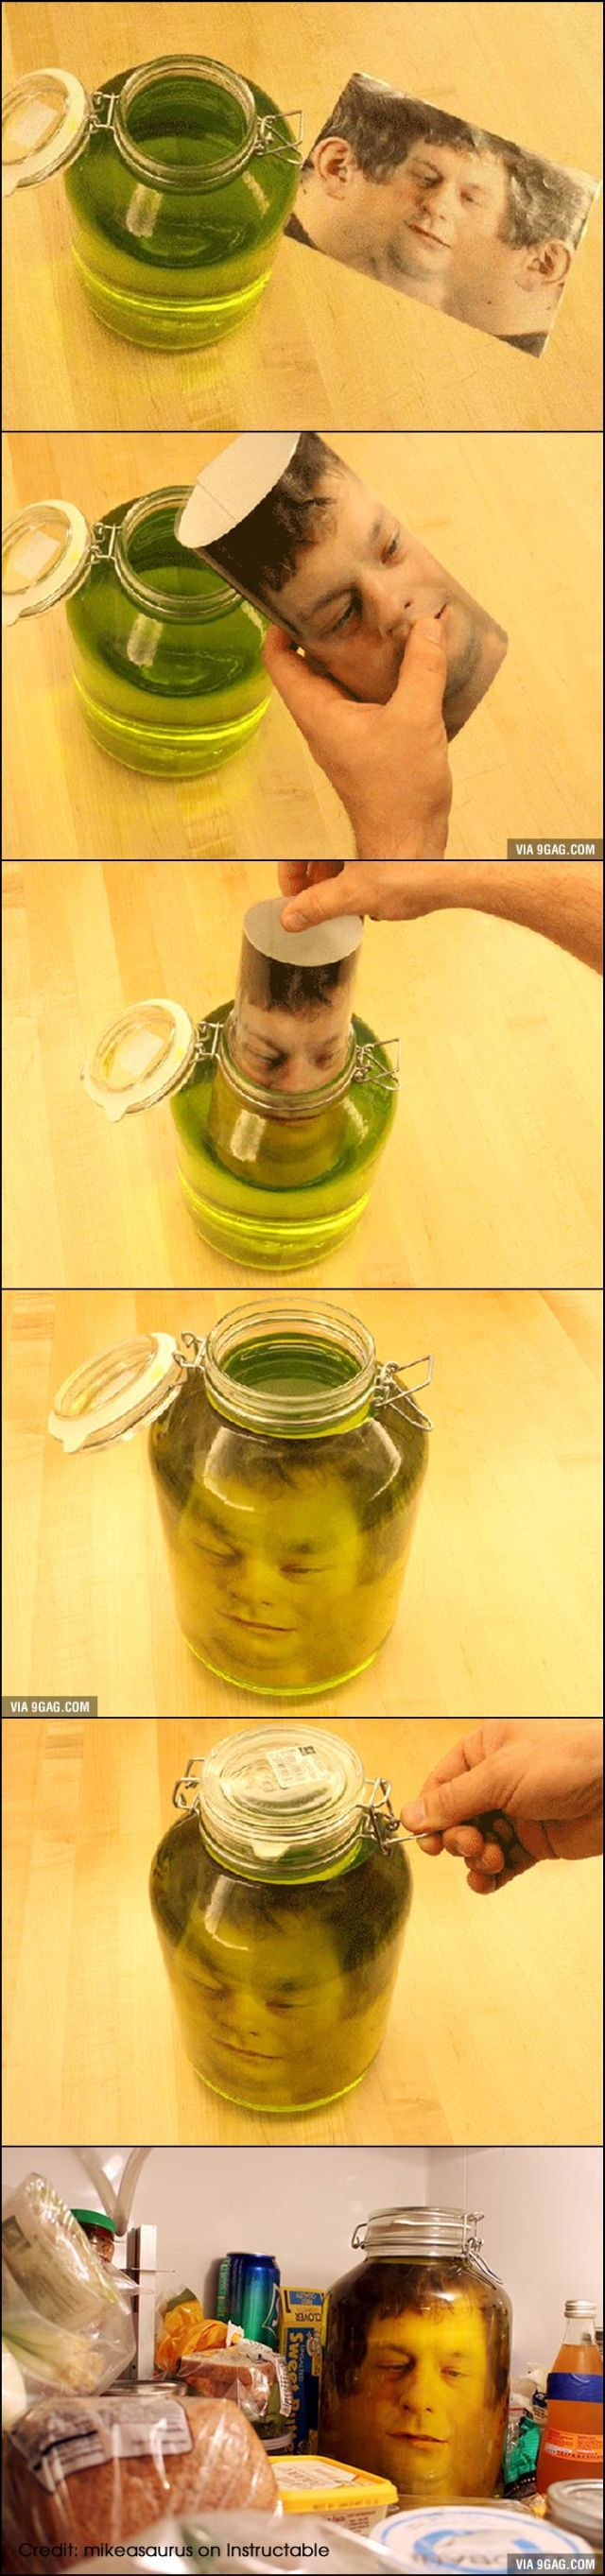 DIY: Head in a jar prank Halloween